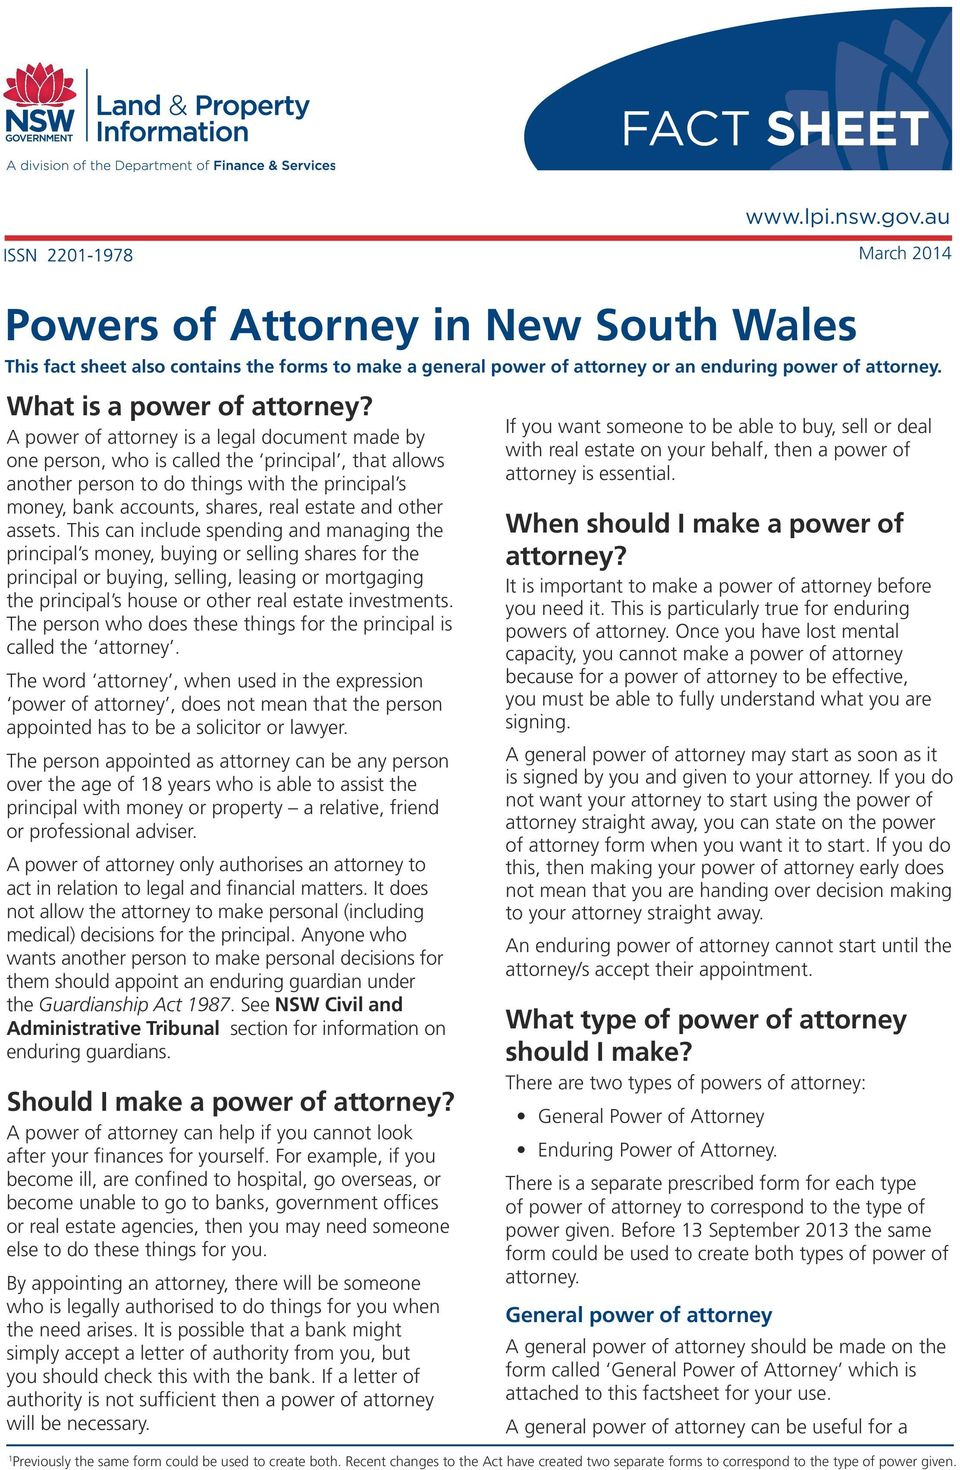 A power of attorney is a legal document made by one person, who is called the principal, that allows another person to do things with the principal s money, bank accounts, shares, real estate and